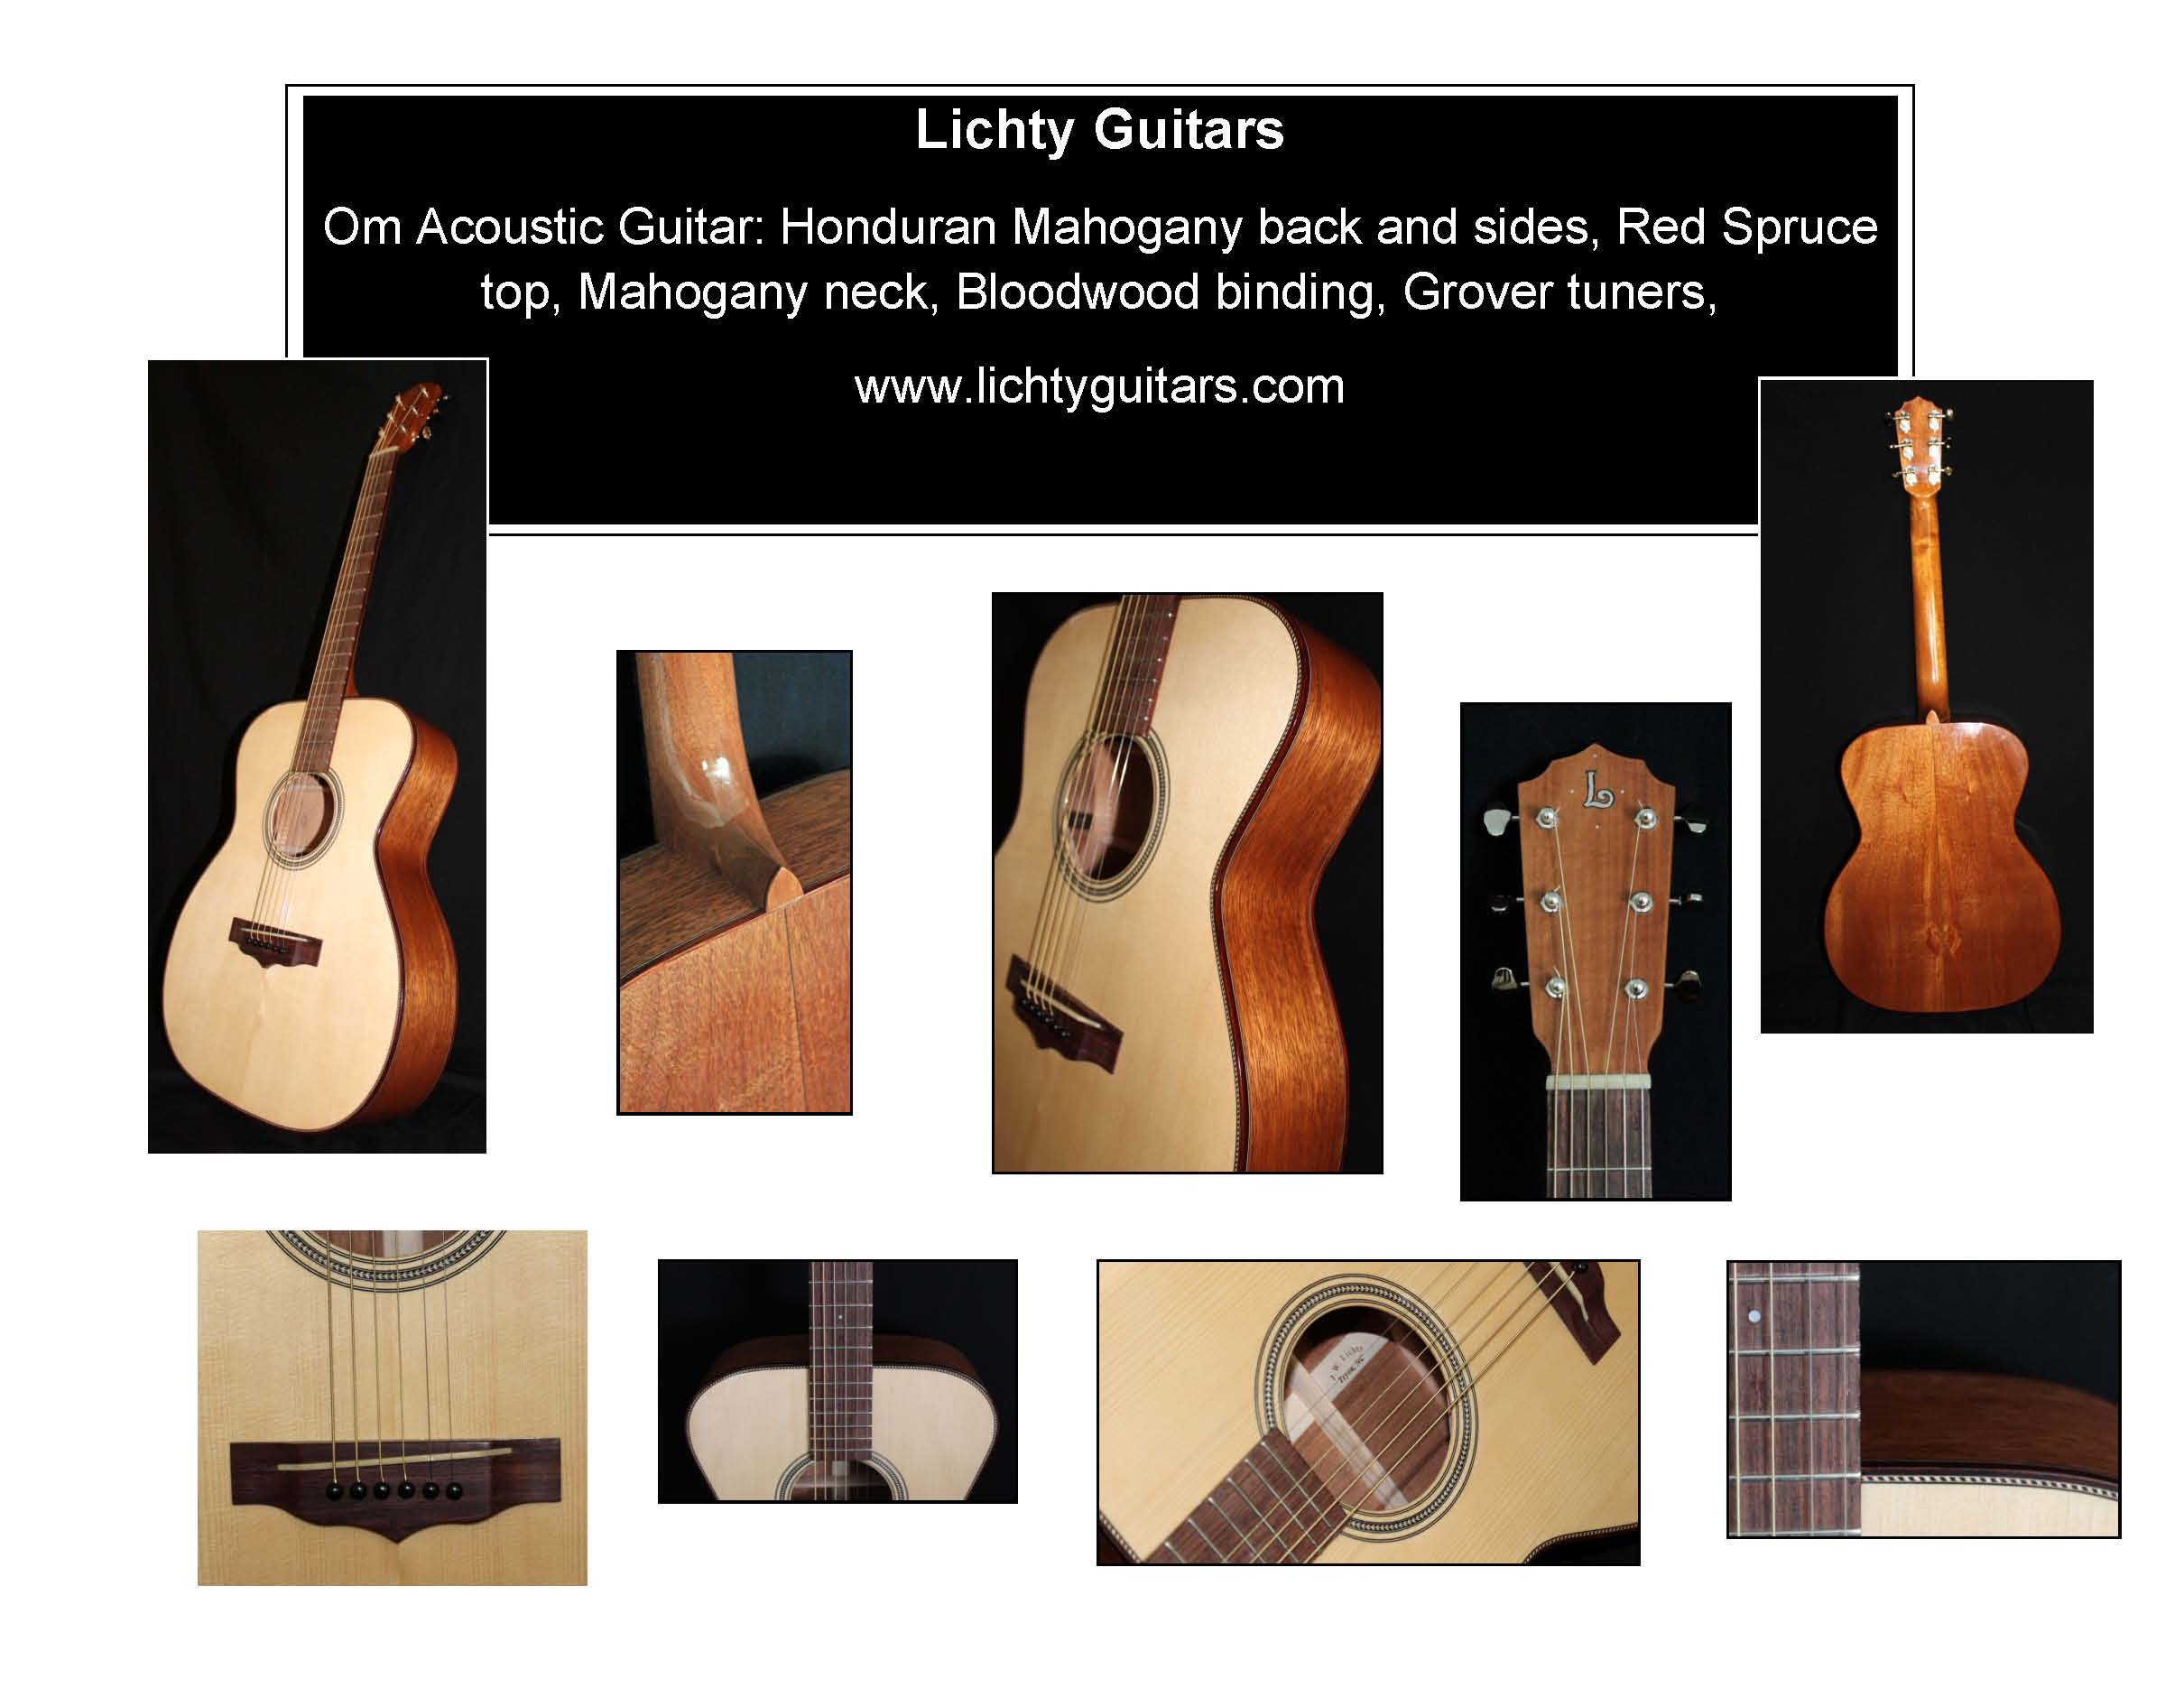 Handmade Acoustic Guitar Auction, Lichty Guitars